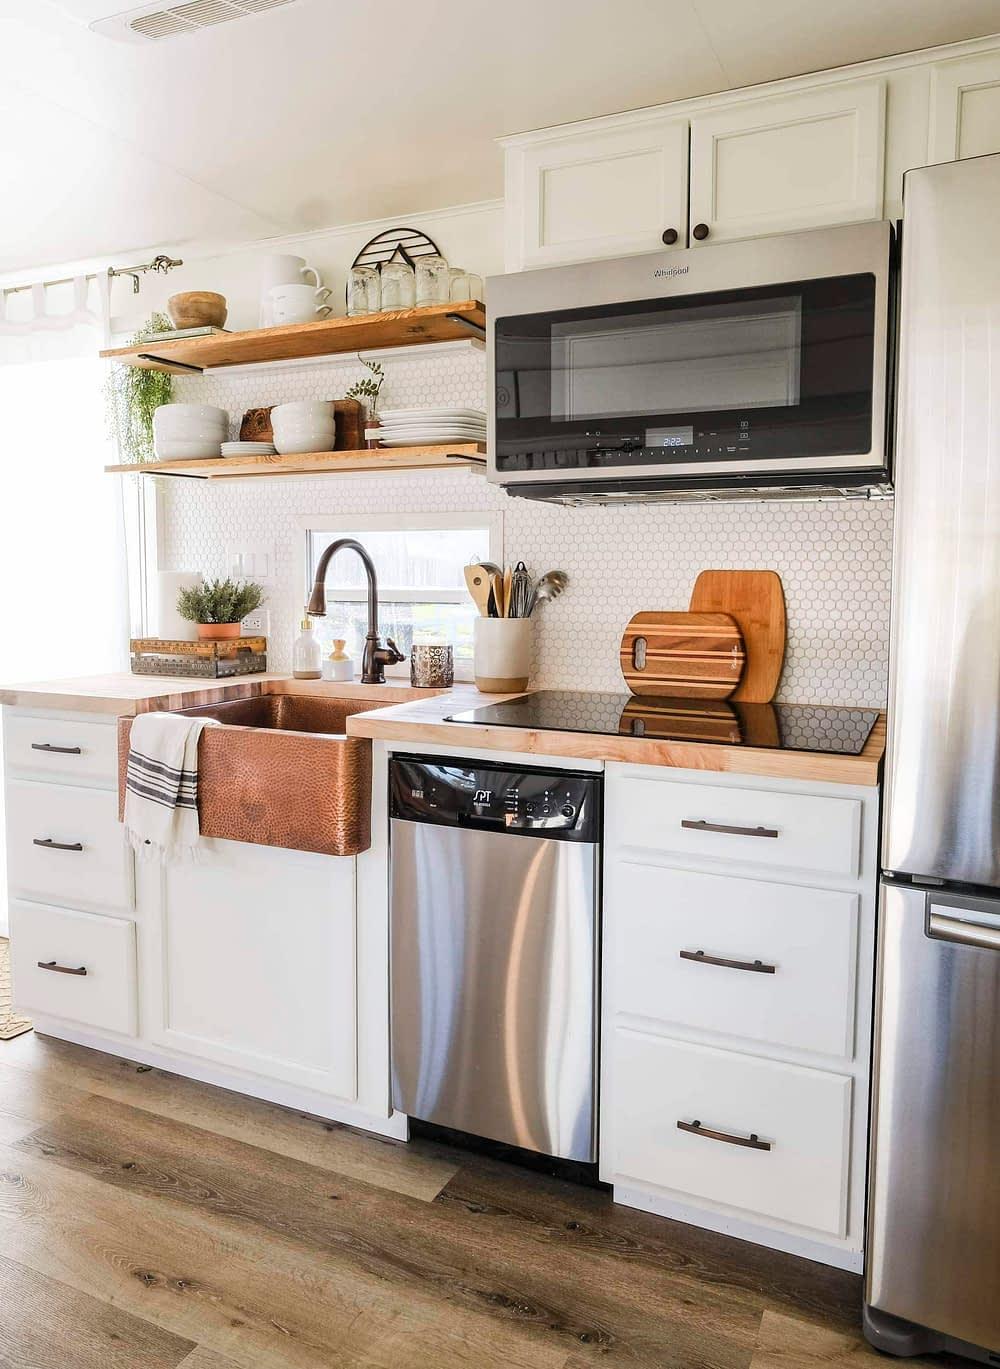 RV kitchen remodel with white cabinets and wood look flooring